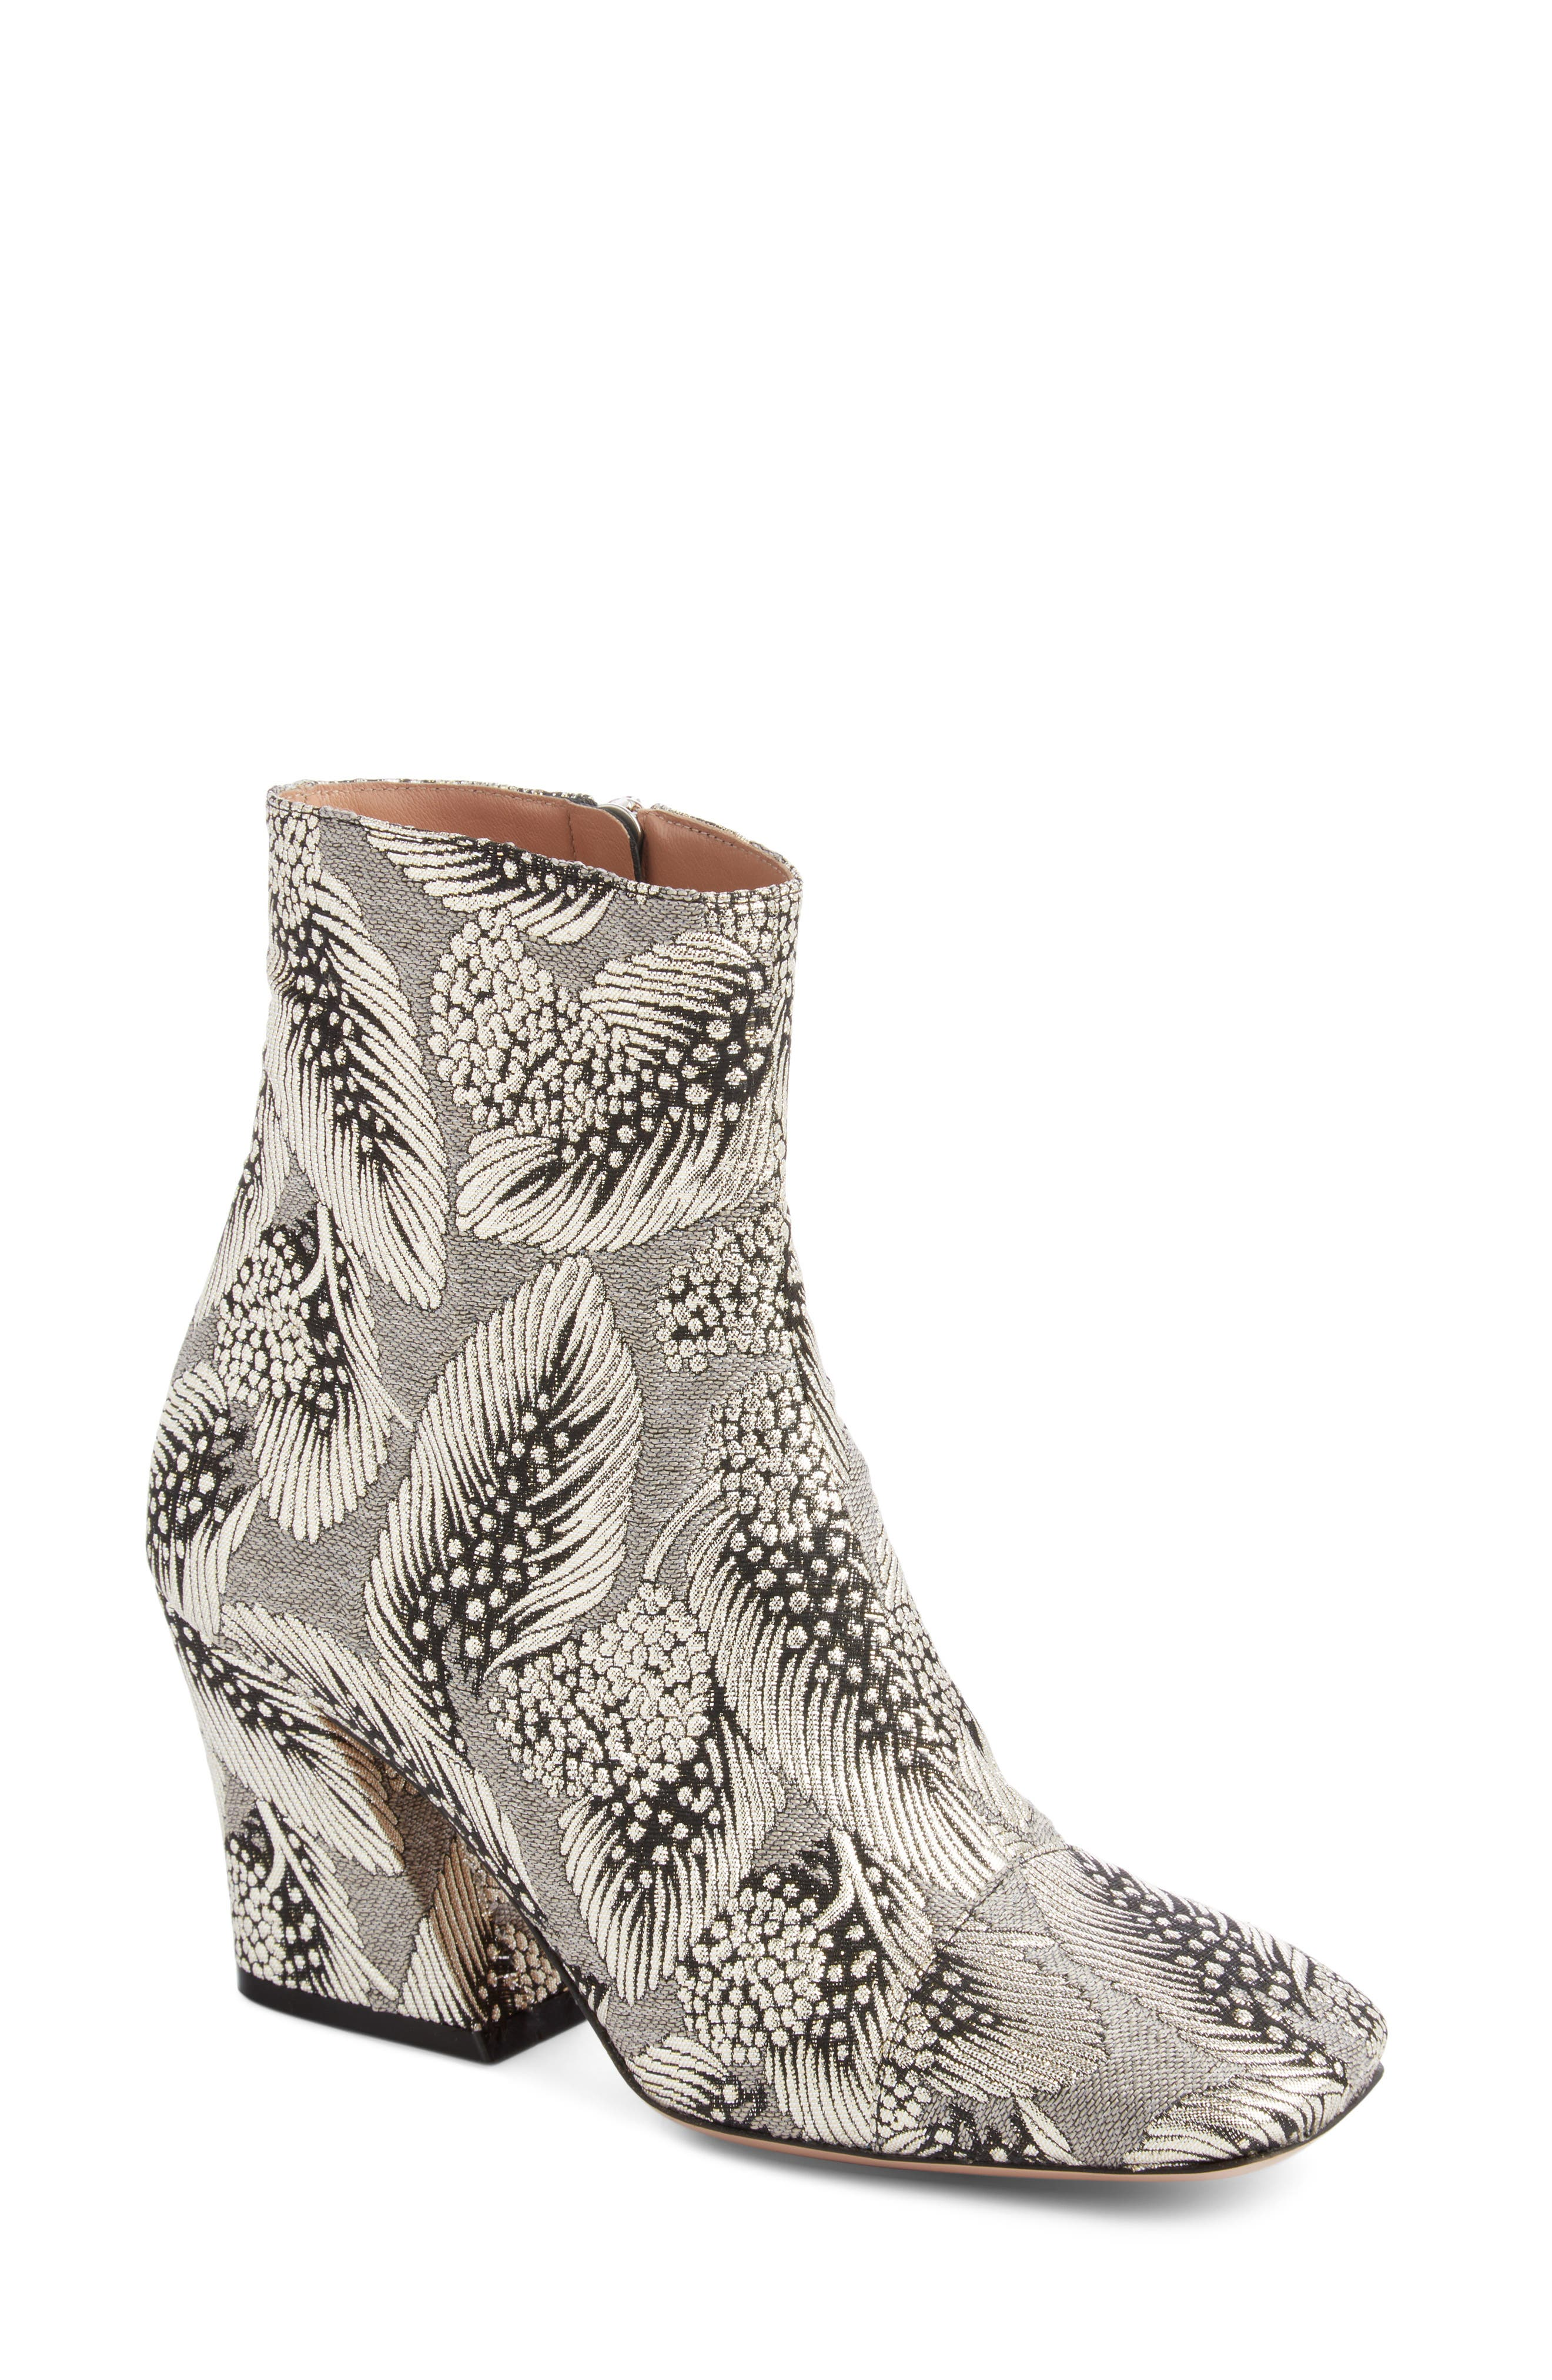 Leaf Print Angle Heel Bootie,                             Main thumbnail 1, color,